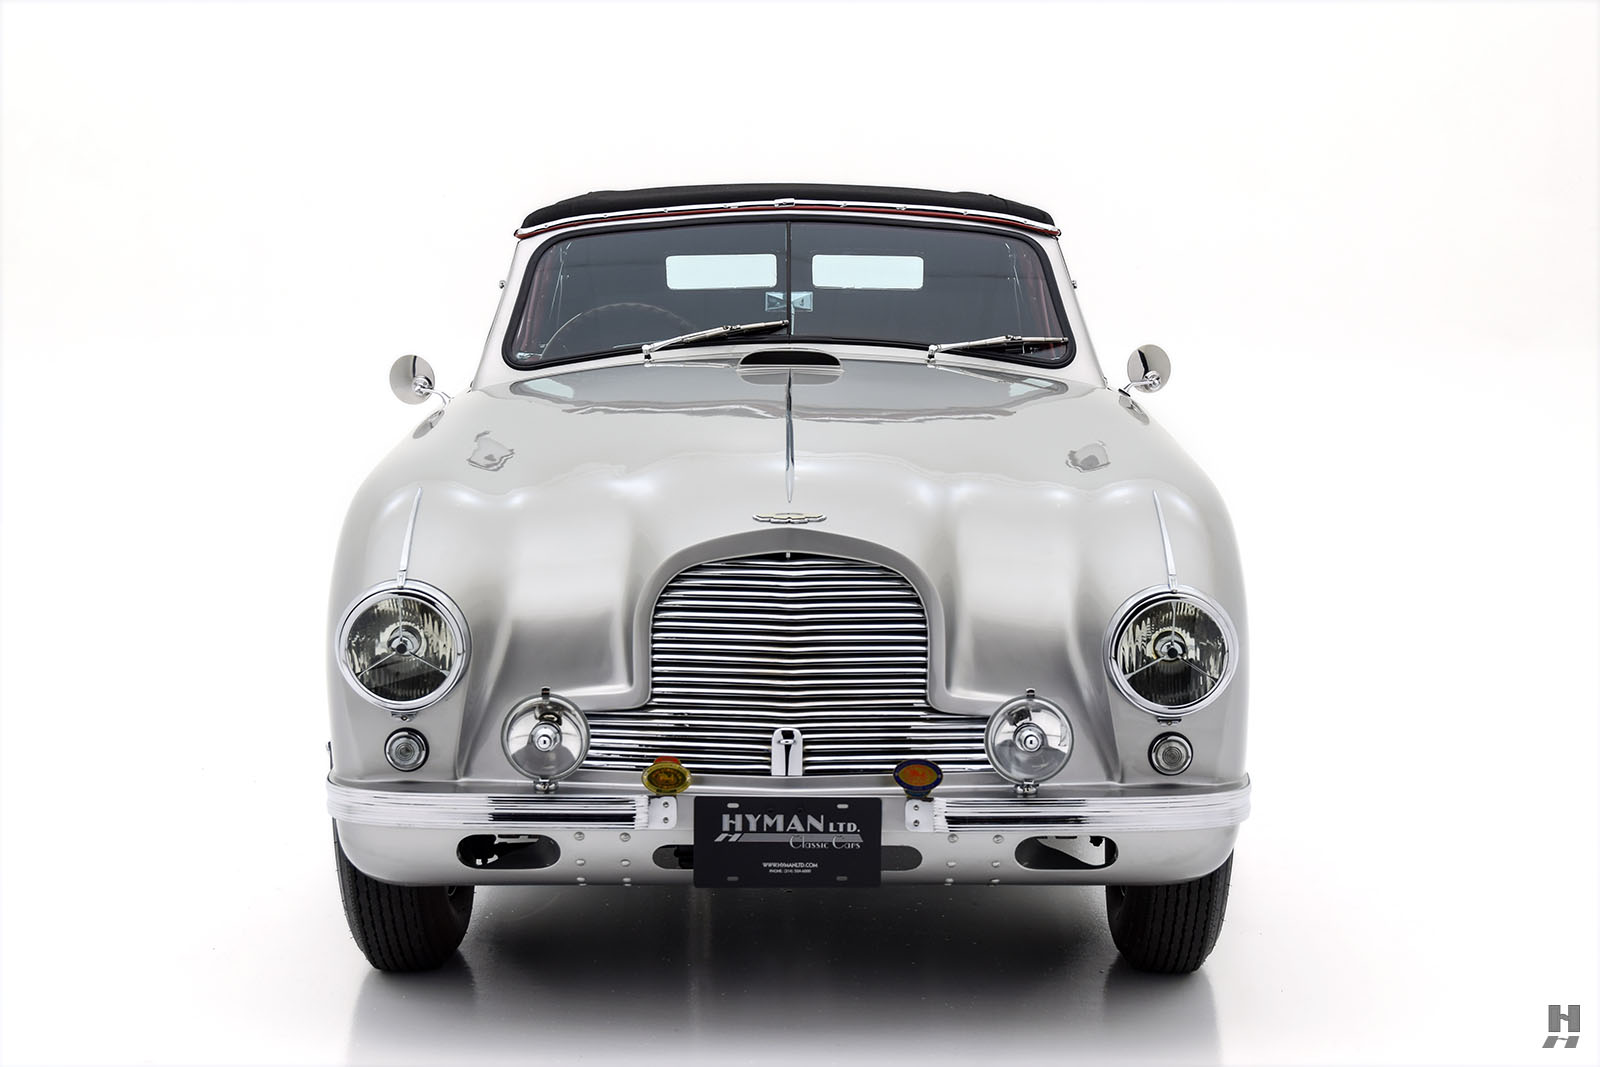 ... 1952 Aston Martin DB2 Drophead Coupe For Sale At Hyman LTD ...